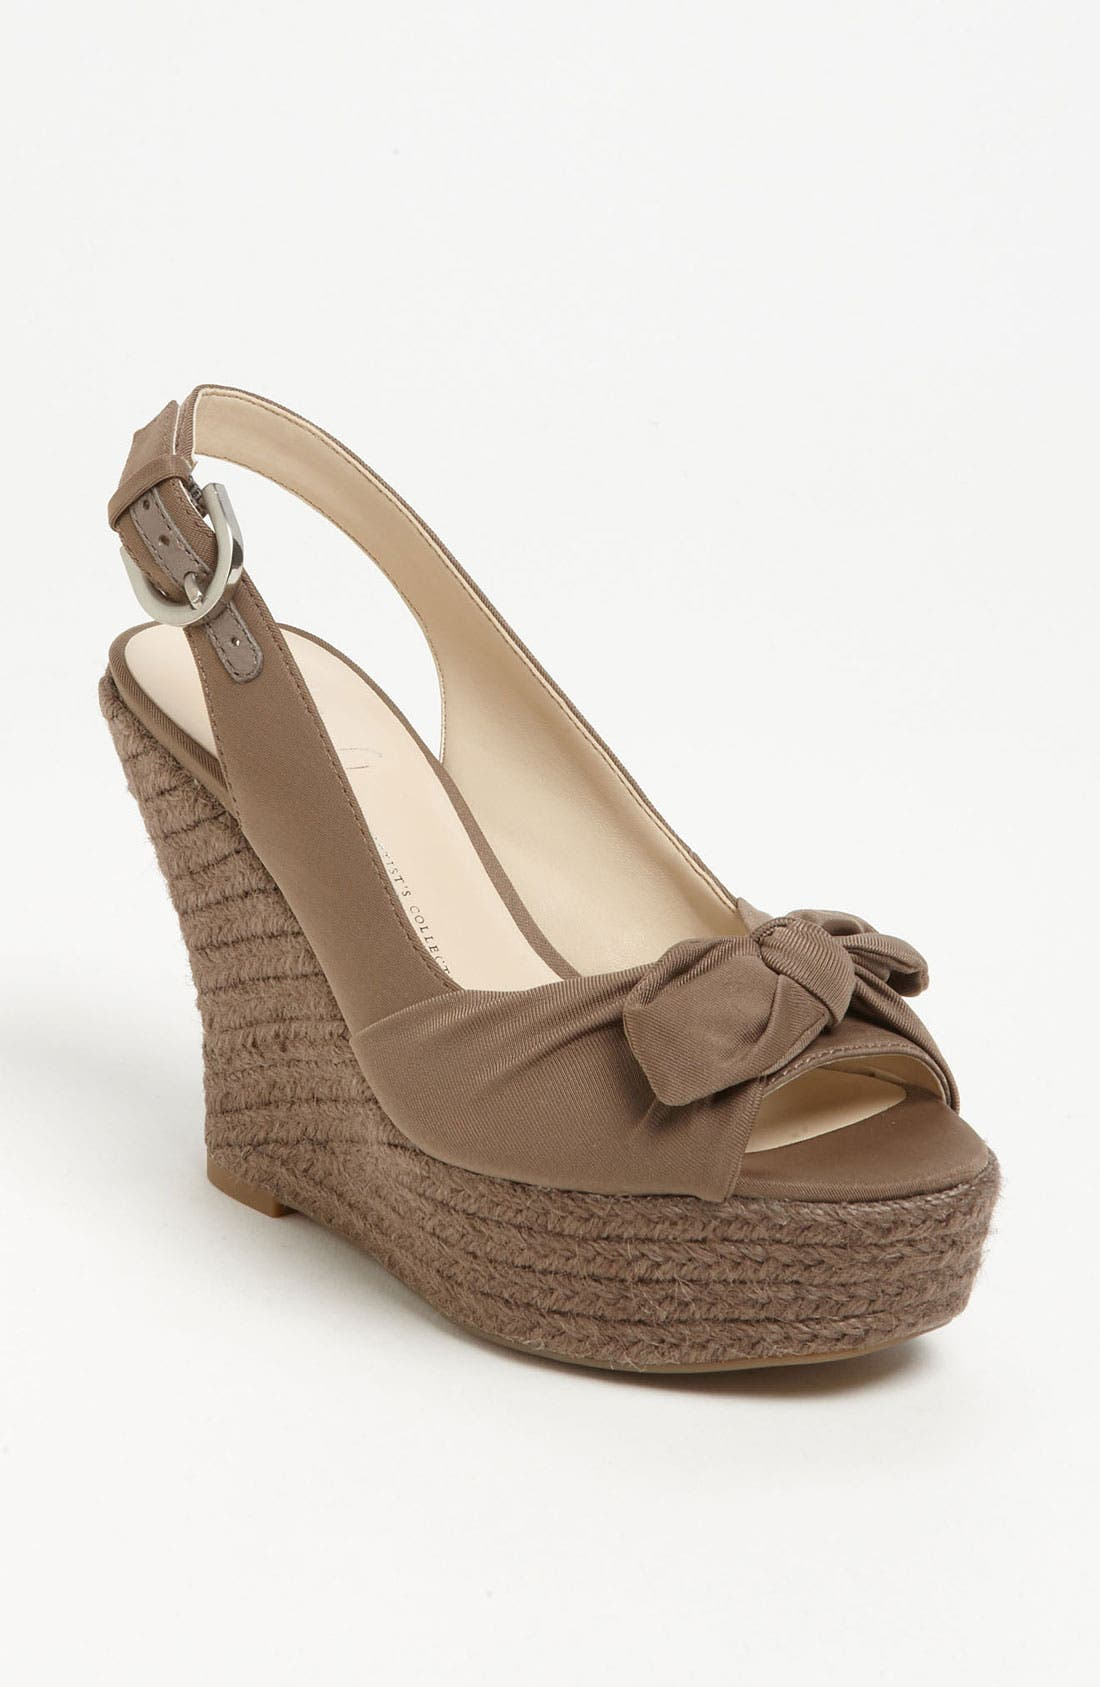 Alternate Image 1 Selected - Franco Sarto 'Lacey' Slingback Wedge